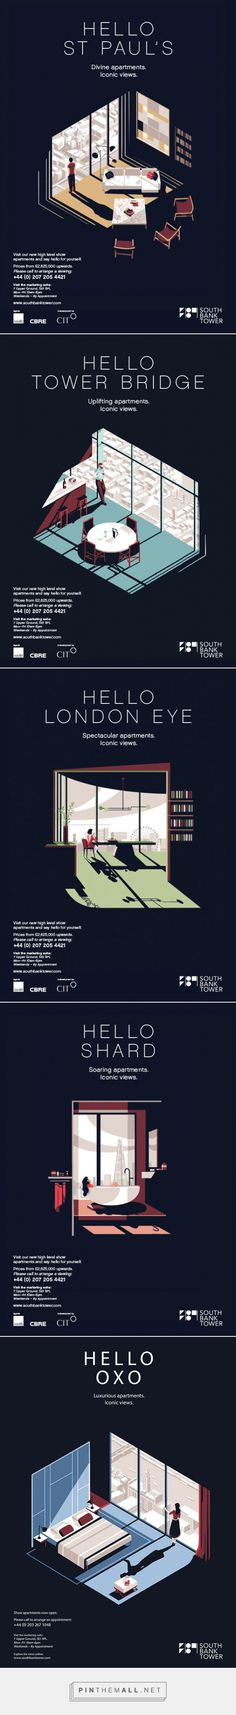 It's Nice That | Tom Haugomat's cinematic posters for luxury apartments in a Southbank high-rise